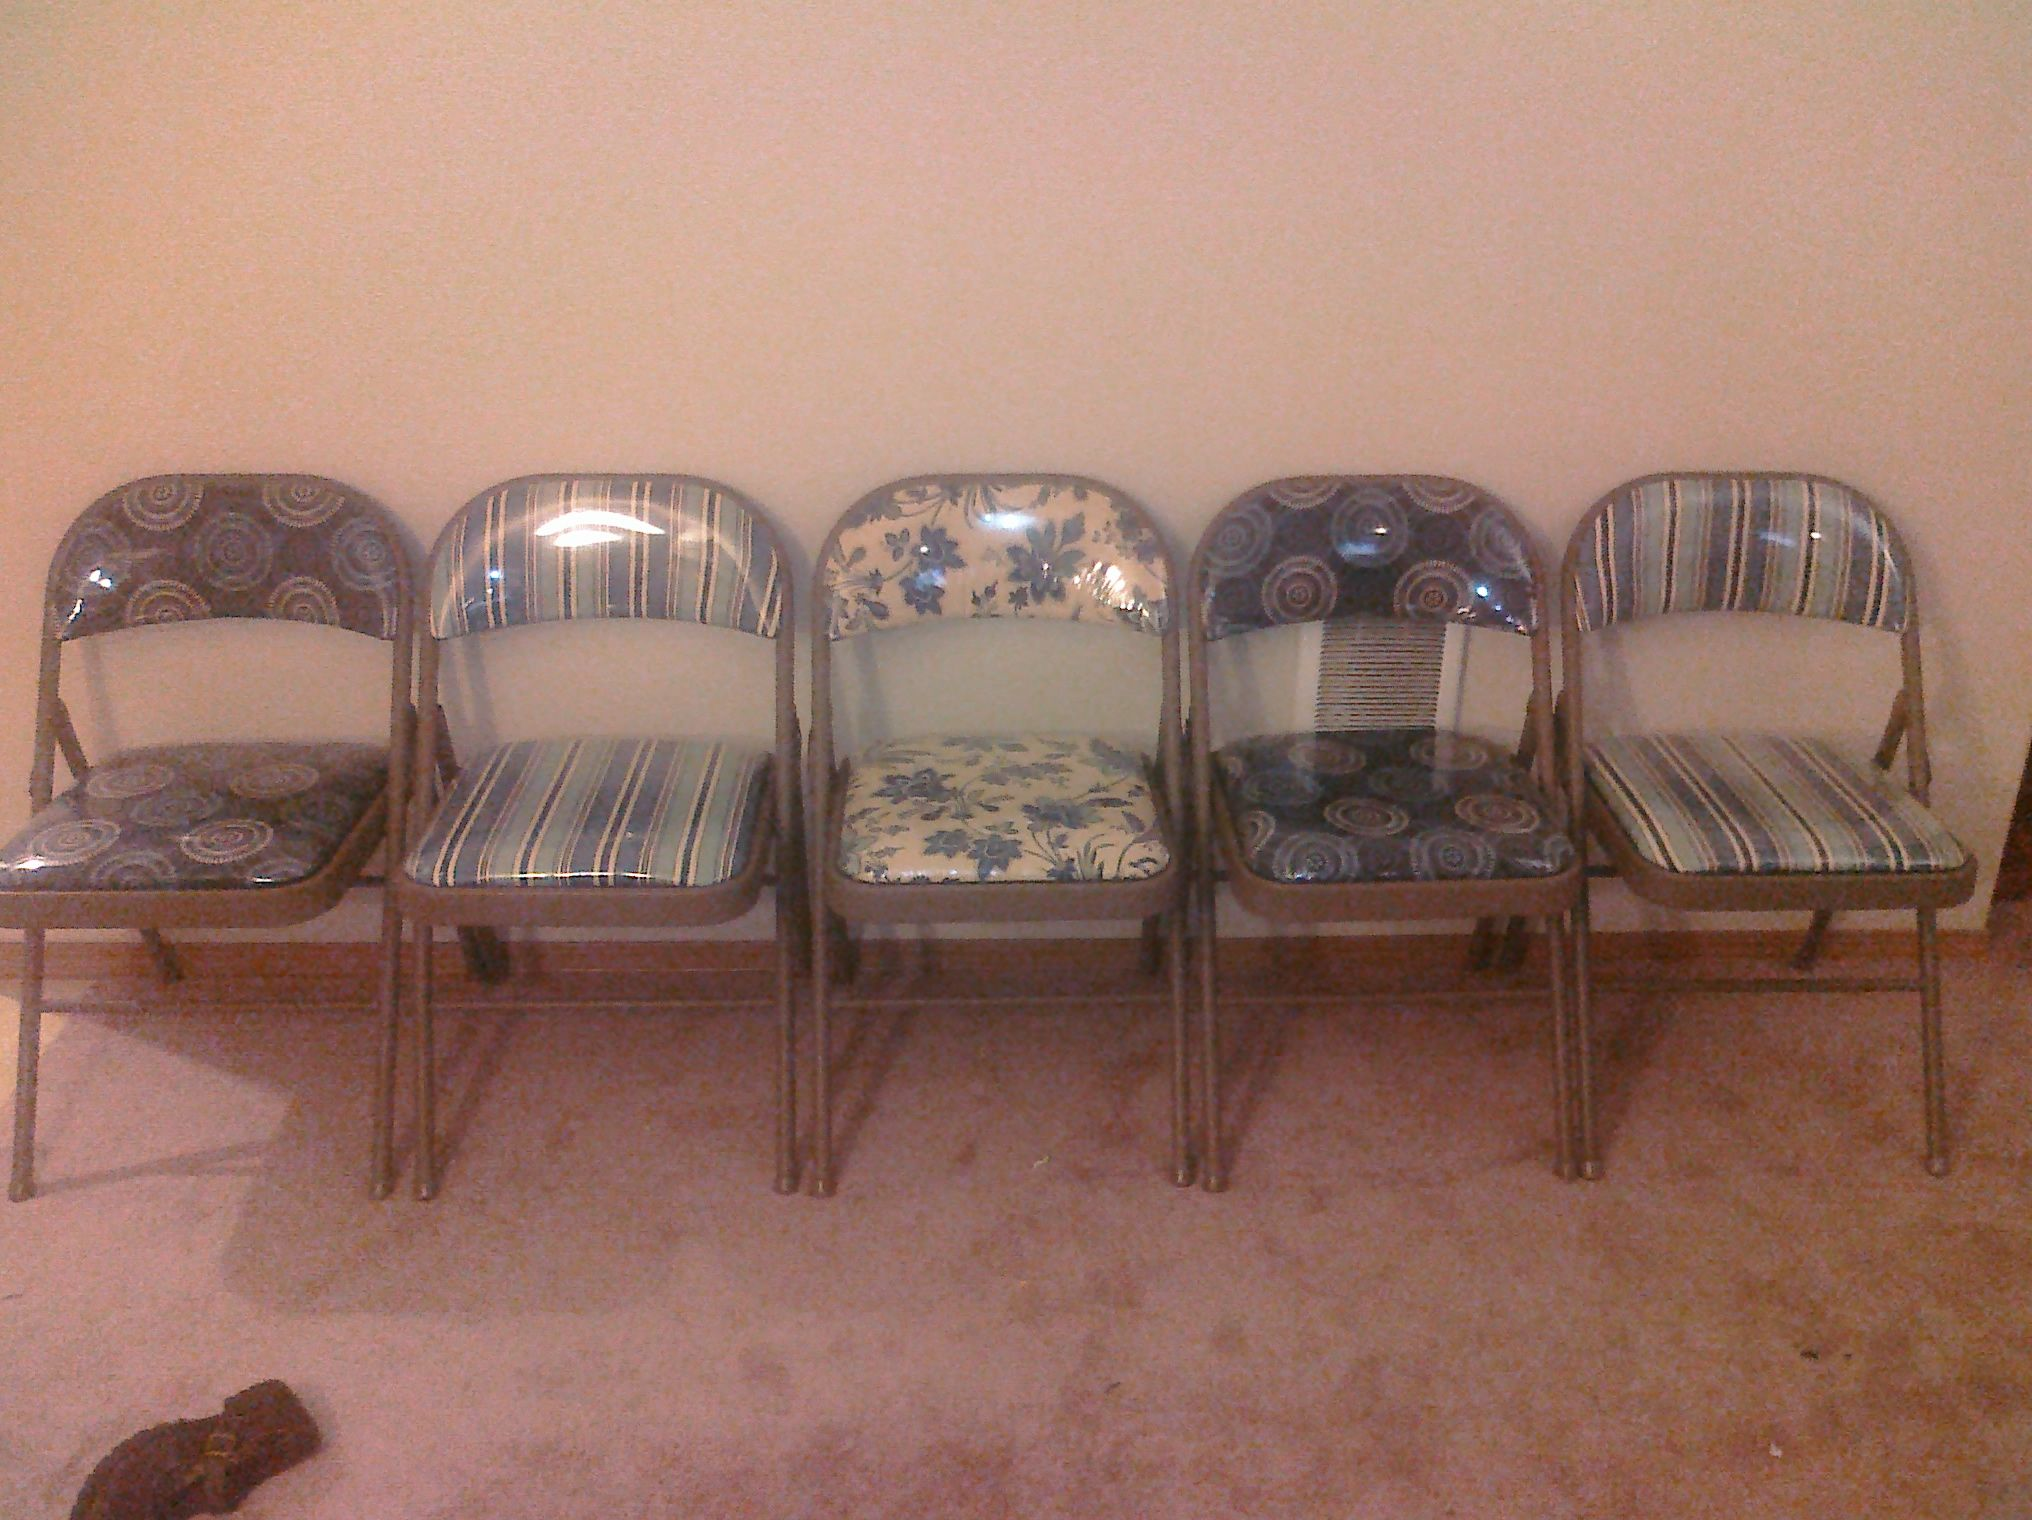 Recovered My Costco folding chairs in decorative fabric and plastic Recovered My Costco folding chairs in decorative fabric and  . Decorative Folding Chairs. Home Design Ideas